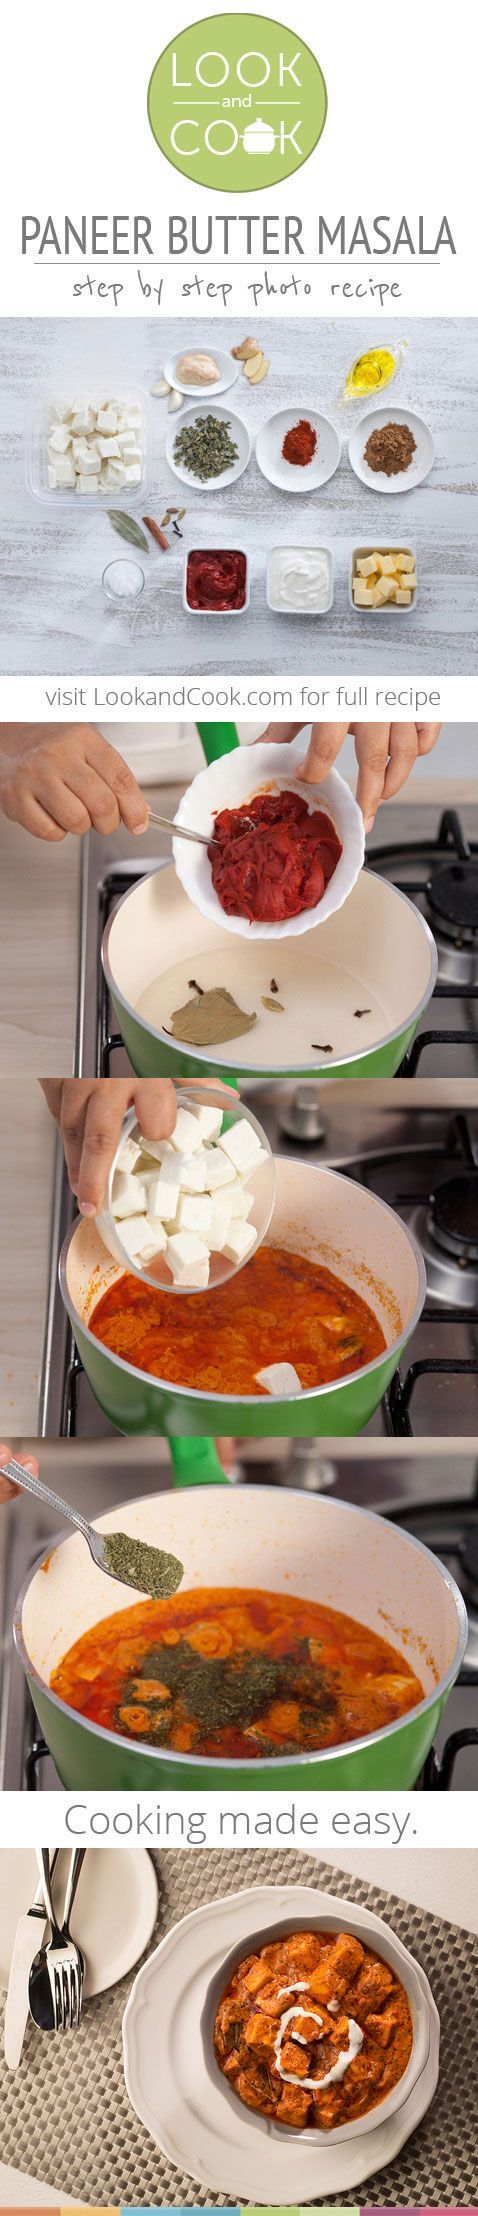 PANEER BUTTER MASALA RECIPE Paneer Butter Masala Recipe (#LC14028): Tender chunks of paneer are cooked in a deliciously rich makhani gravy to give everyone's favourite